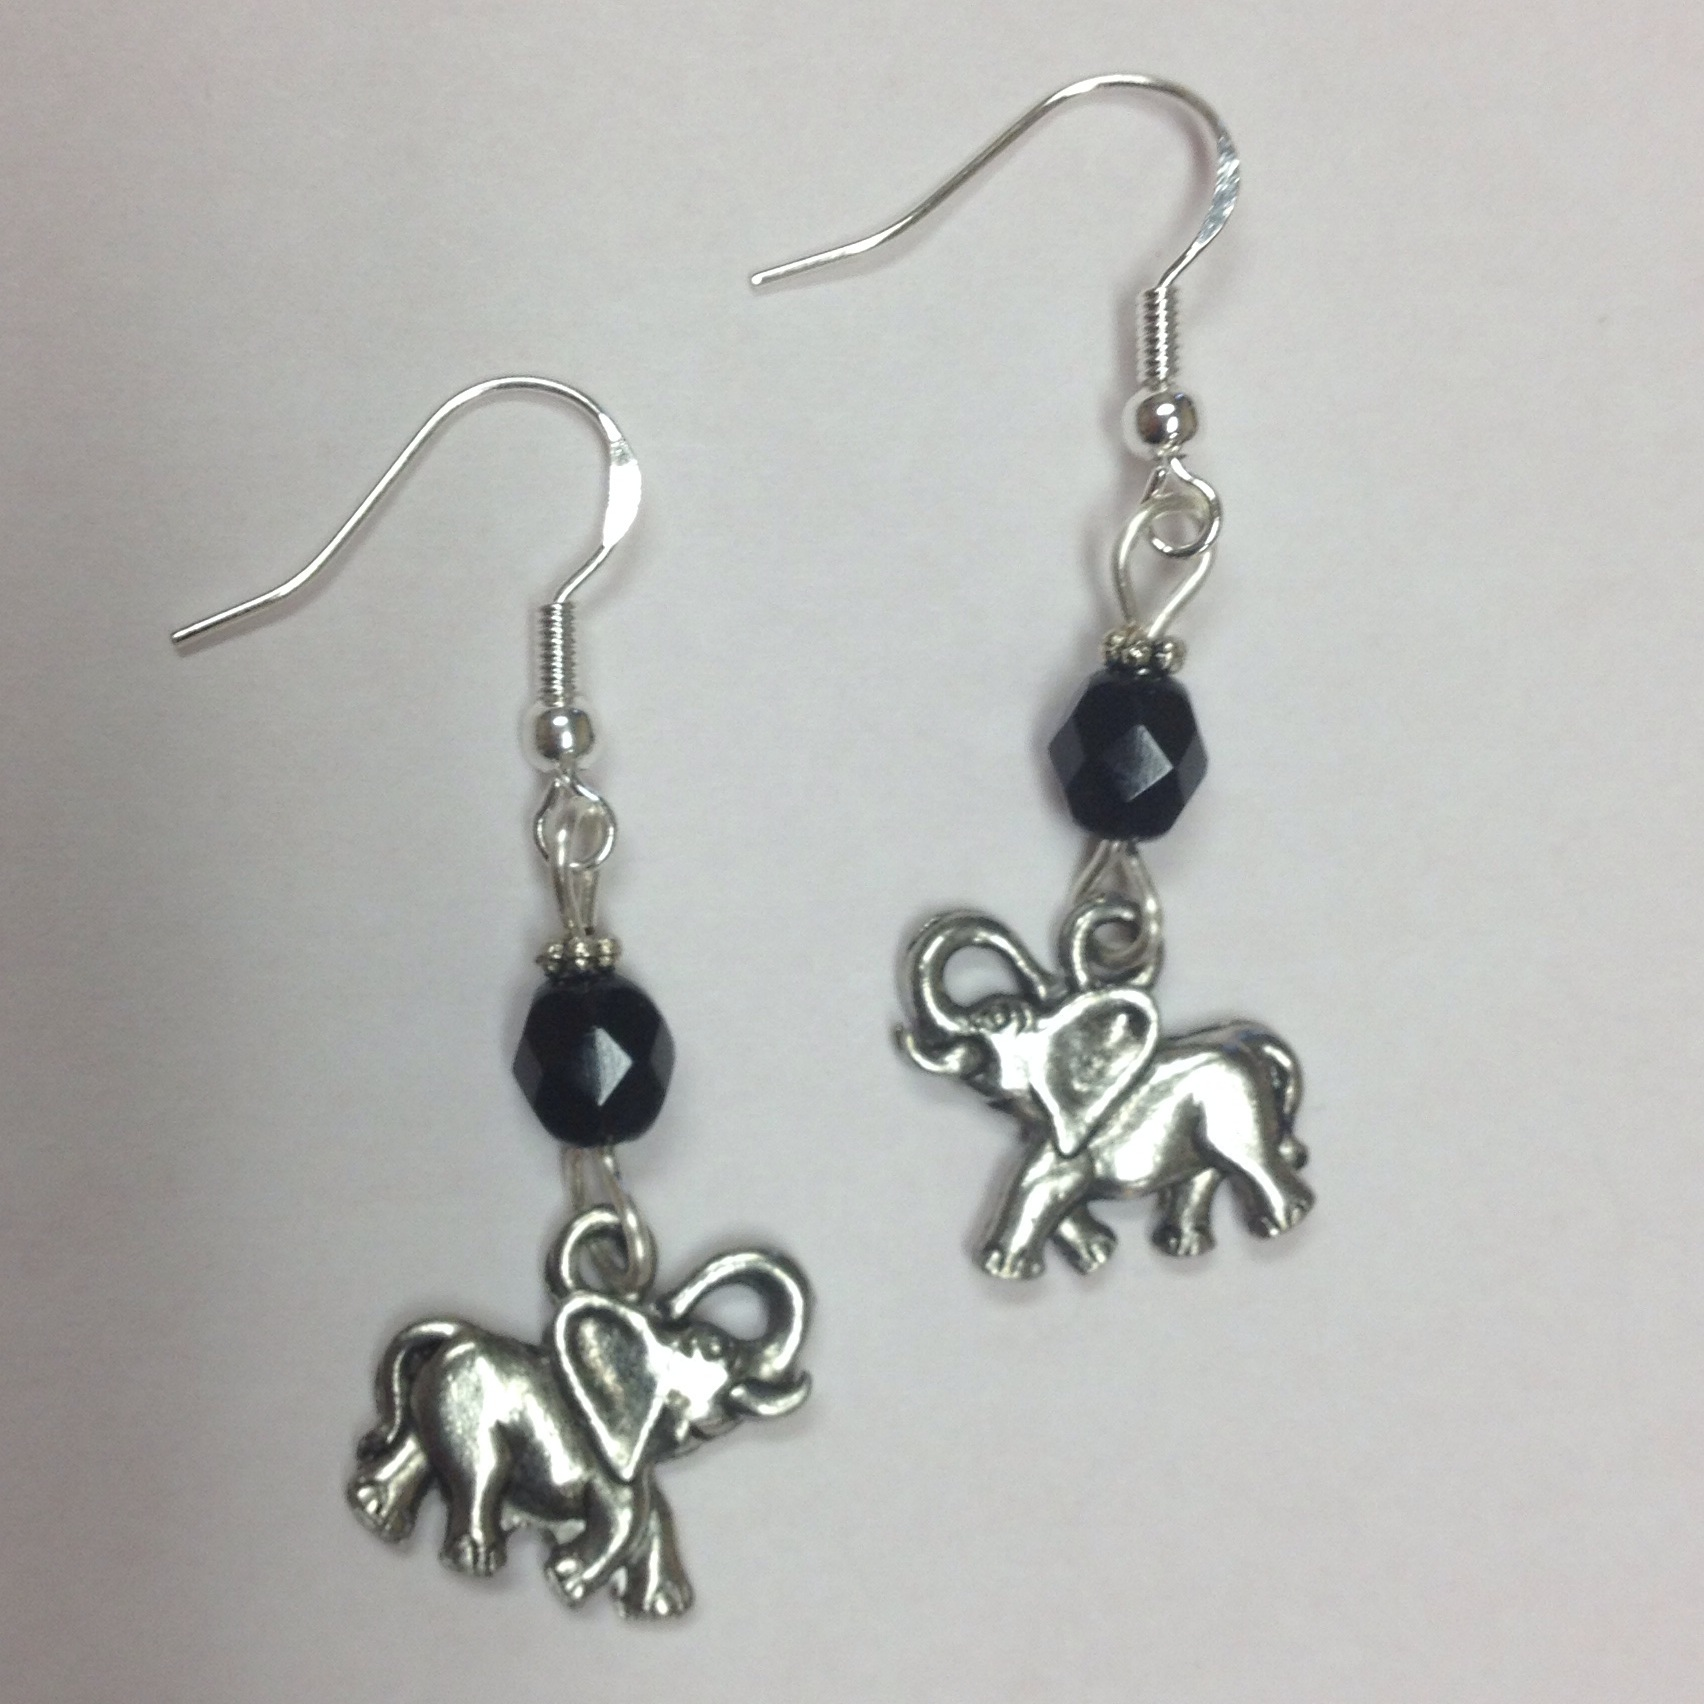 recycled aluminium aluminum earrings elephant